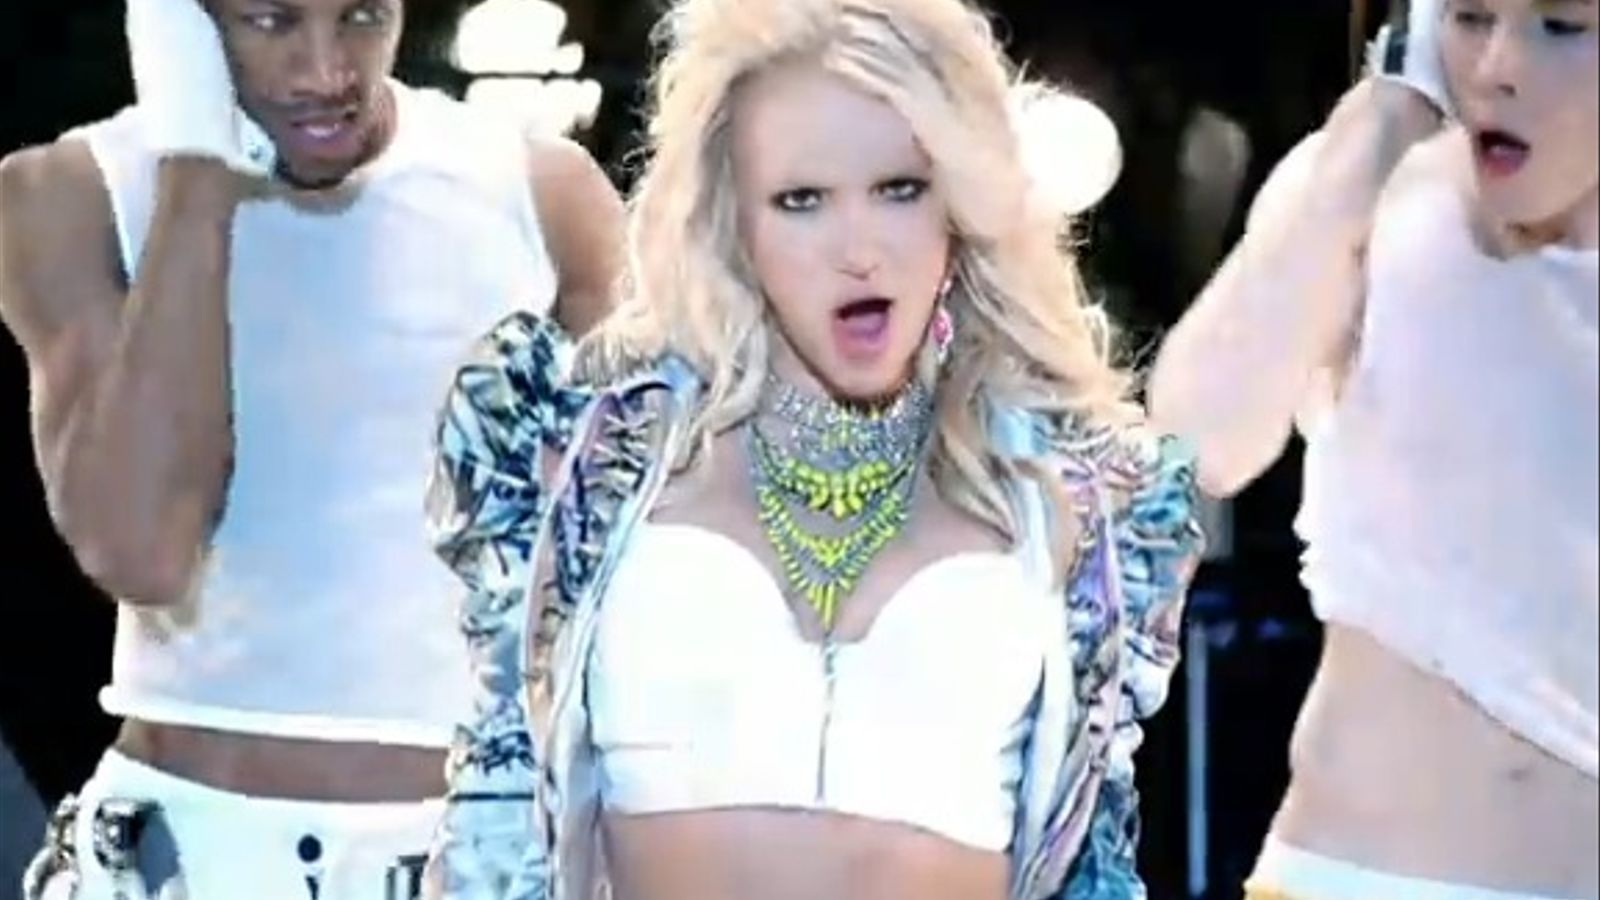 'Holding it against me', nou vídeo de Britney Spears